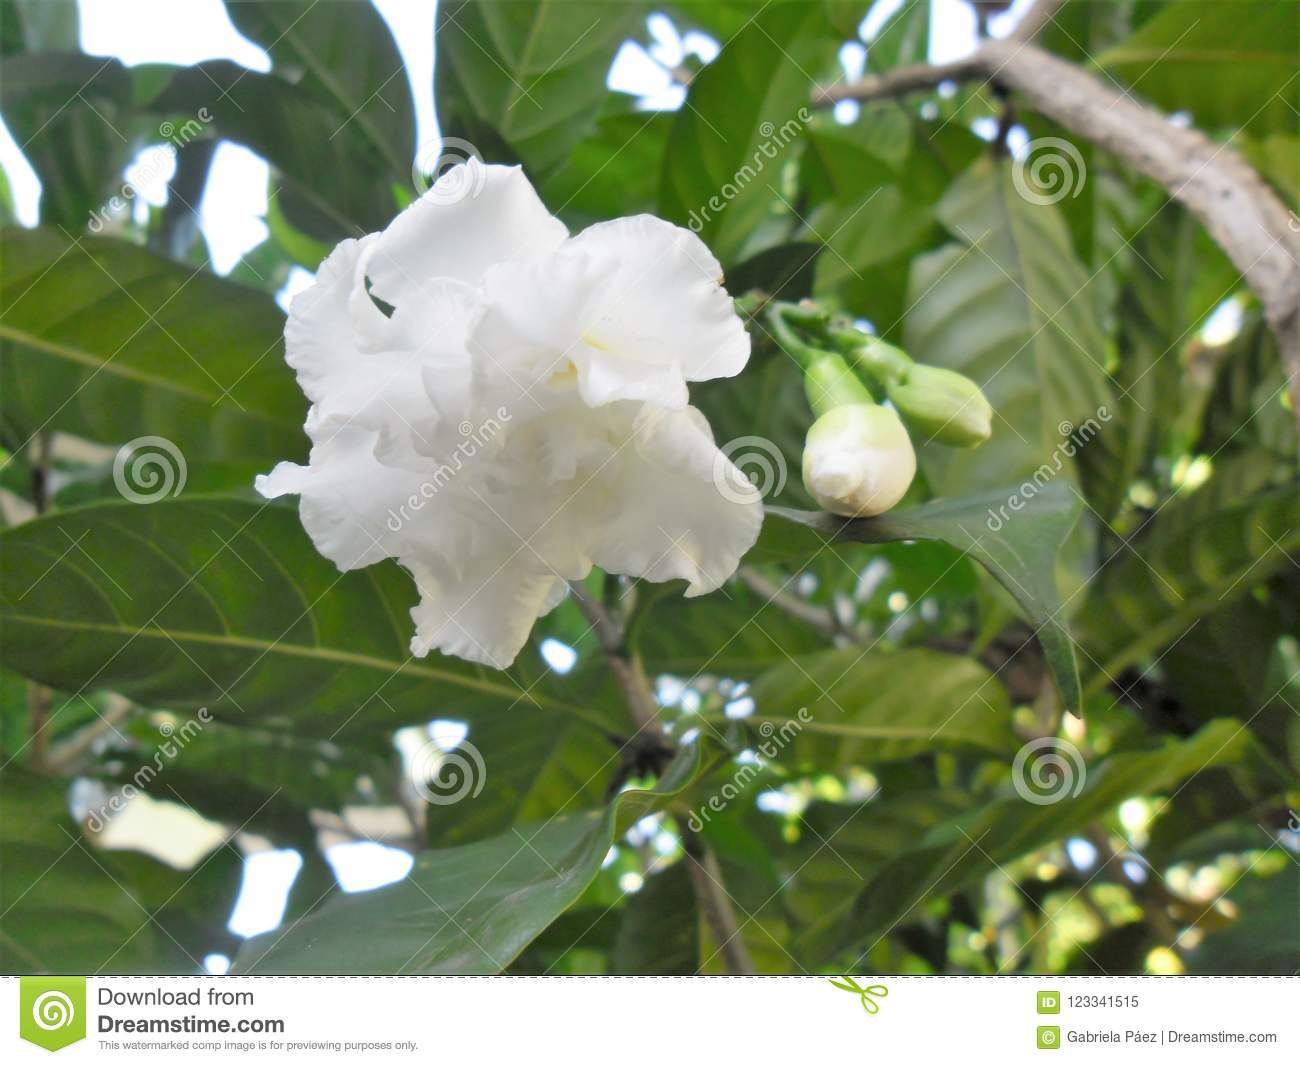 Malabar jasmine flower in a venezuelan garden stock image image of download malabar jasmine flower in a venezuelan garden stock image image of first yearits izmirmasajfo